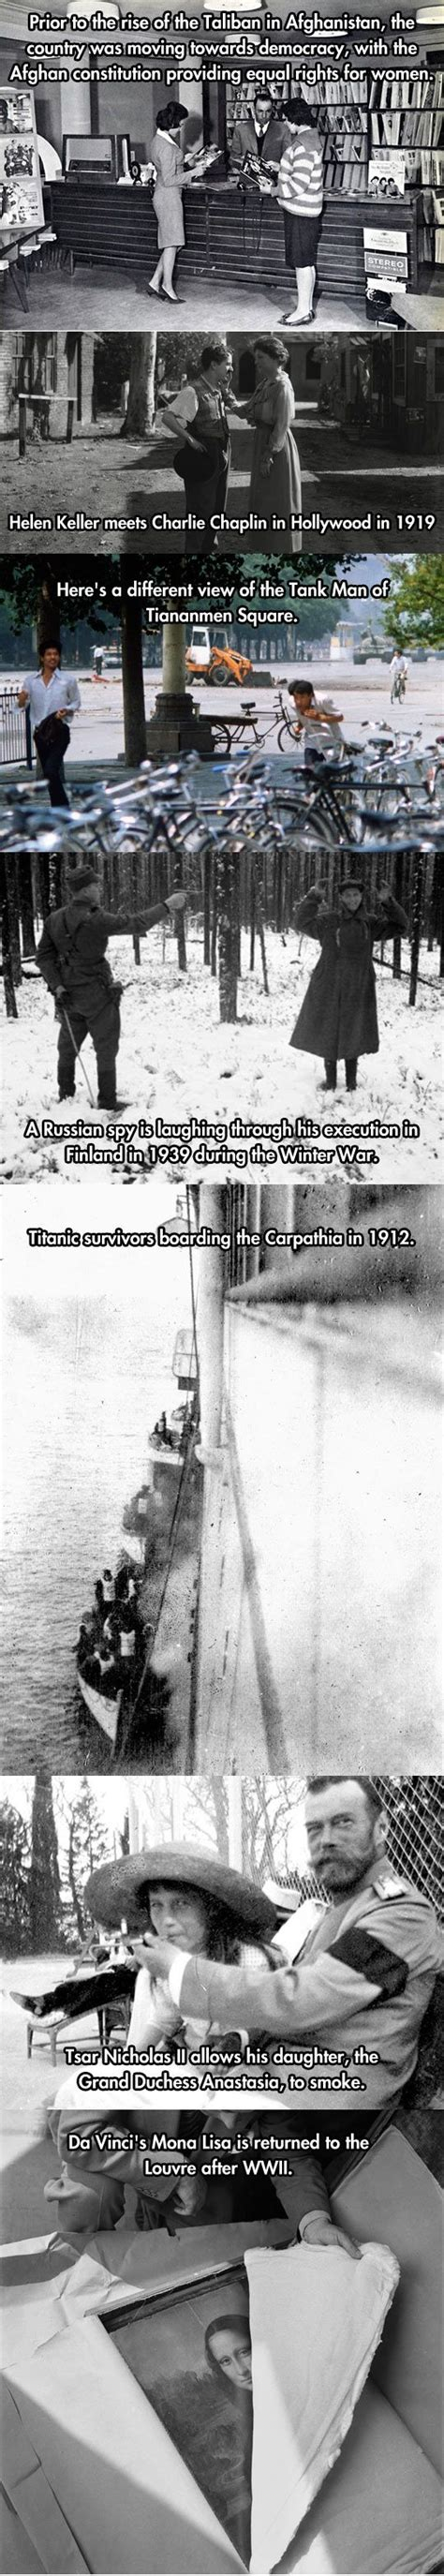 amazing things rarely happen in 25 best ideas about interesting history on pinterest